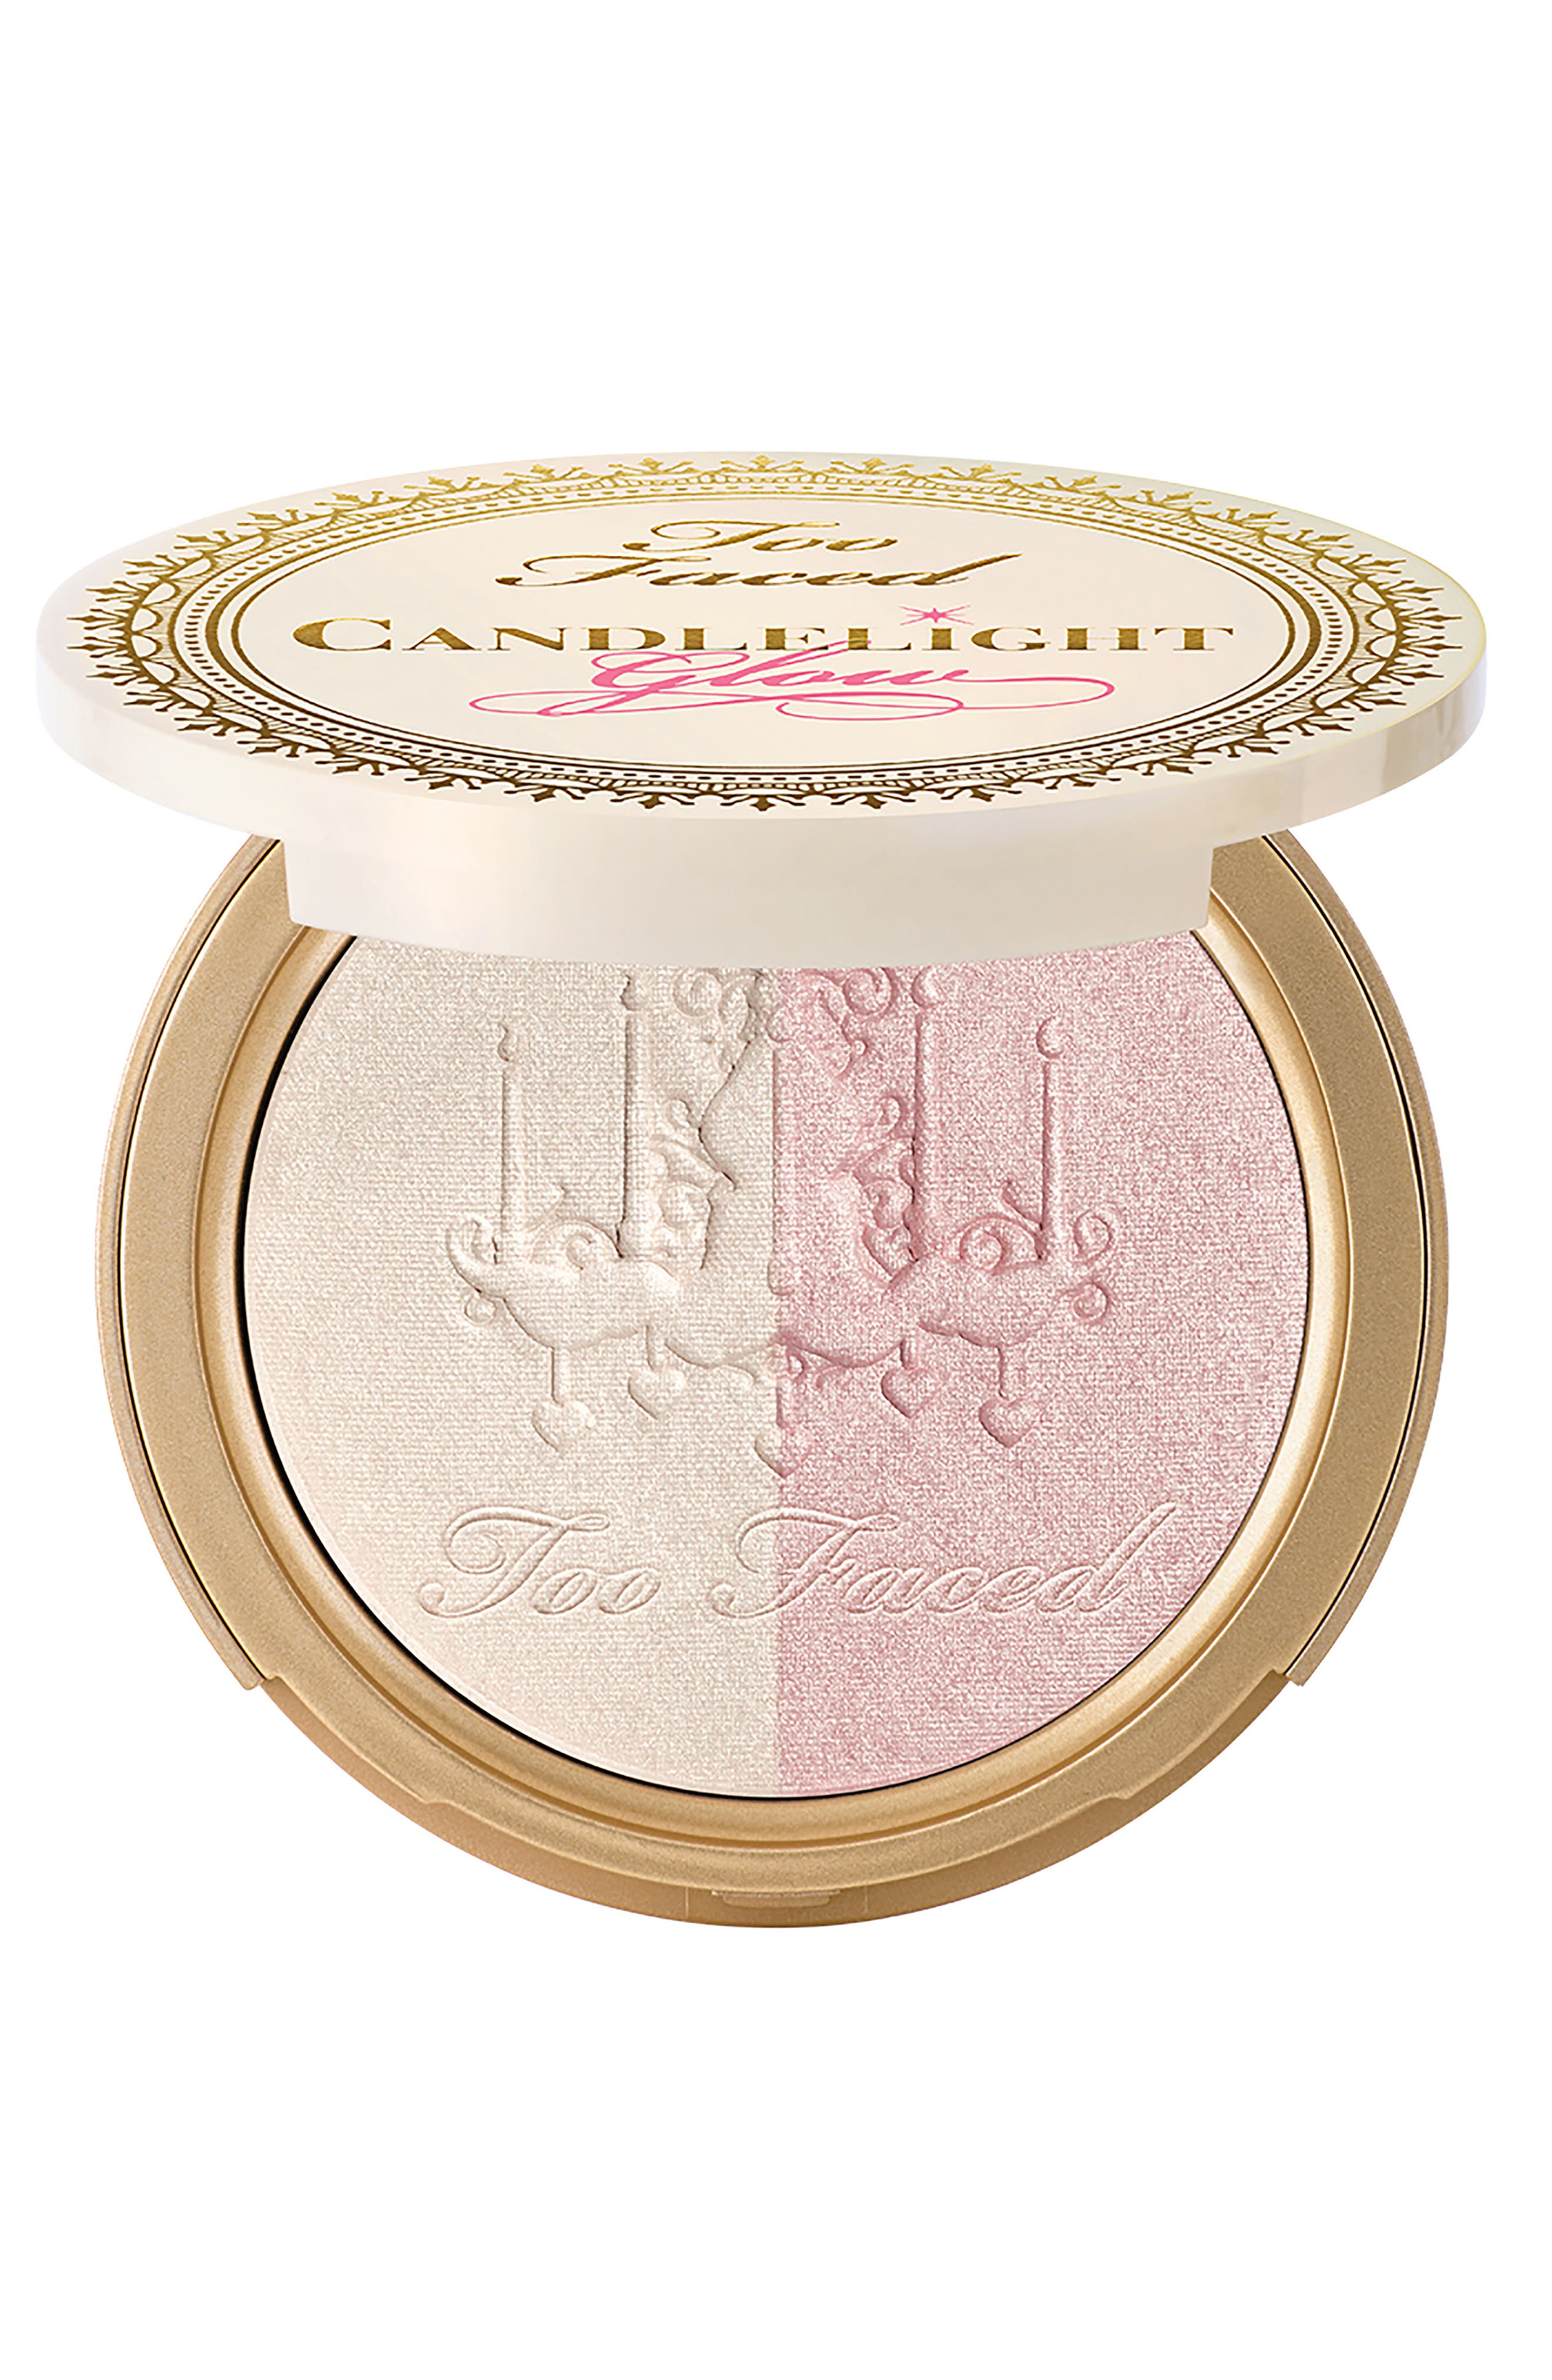 Main Image - Too Faced Candlelight Glow Powder